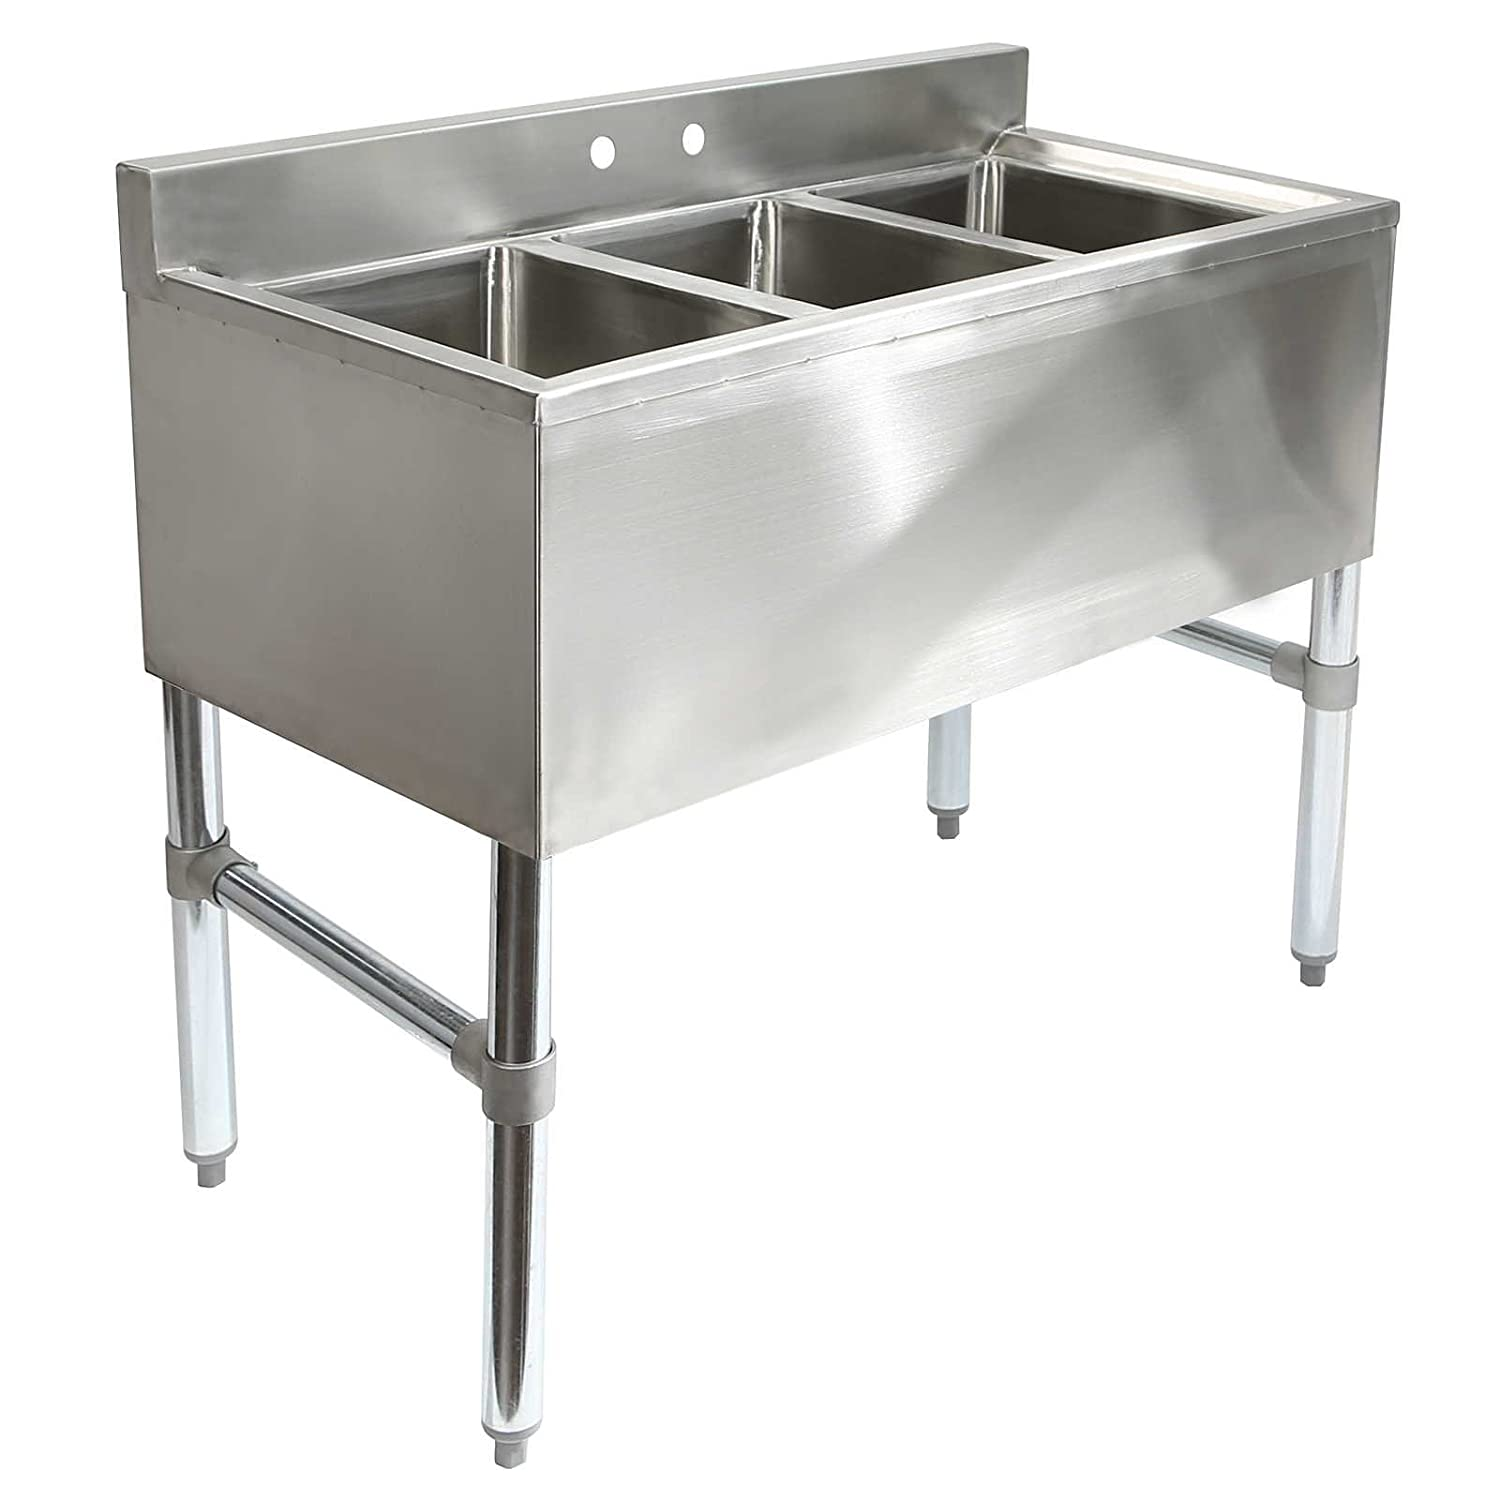 gridmann 3 compartment nsf stainless steel commercial underbar sink - Eljer Kitchen Sinks